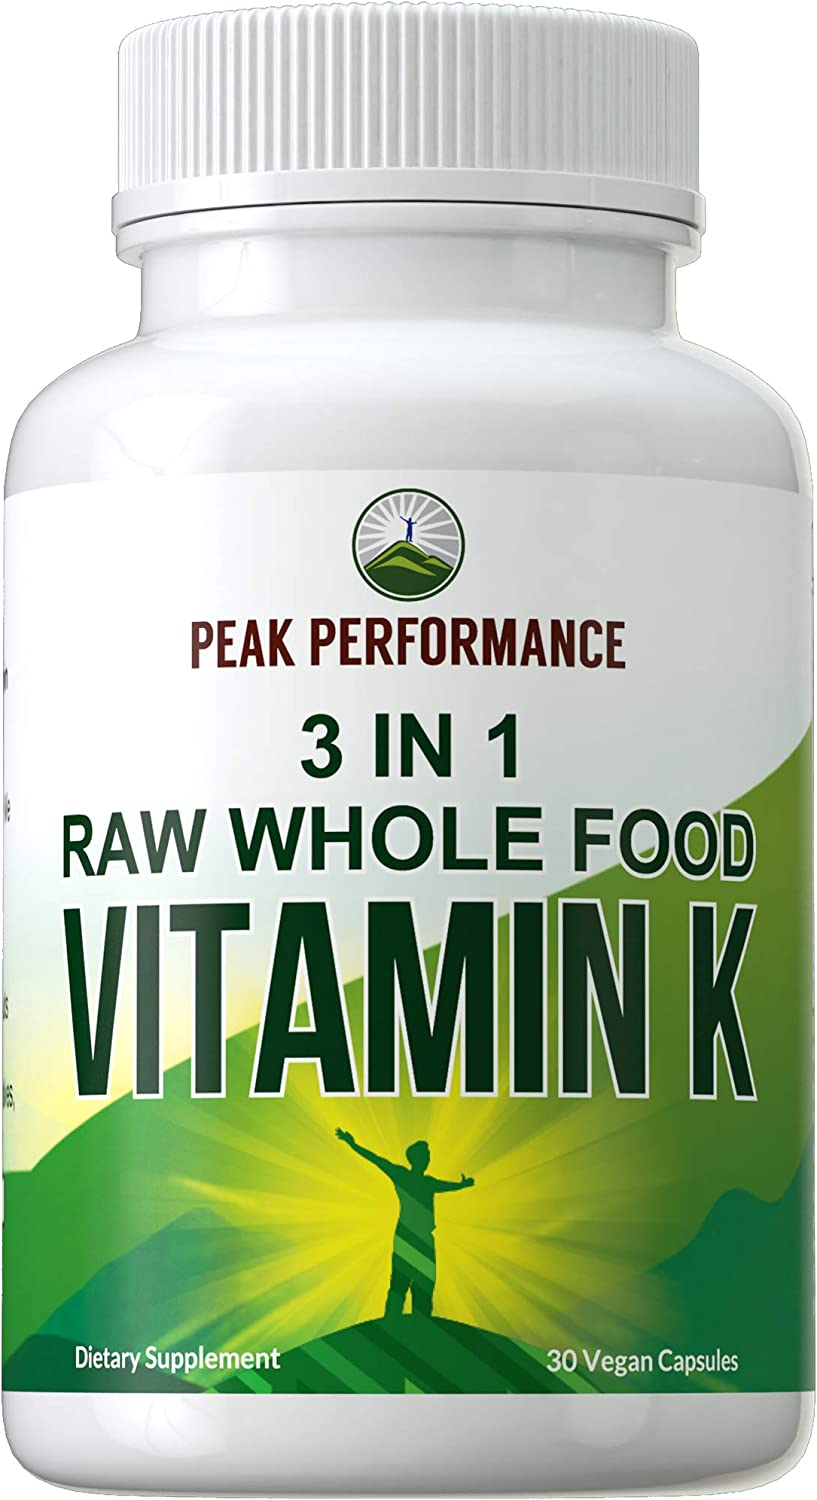 Raw Whole Food Vitamin K Vegan Capsules Supplement by Peak Performance. USA Sourced Vitamins K1, K-2 MK4 + K2 Natto MK7 and 25 Organic Vegetables + Fruits for Max Absorption. VIT K with K 2 and MK-7